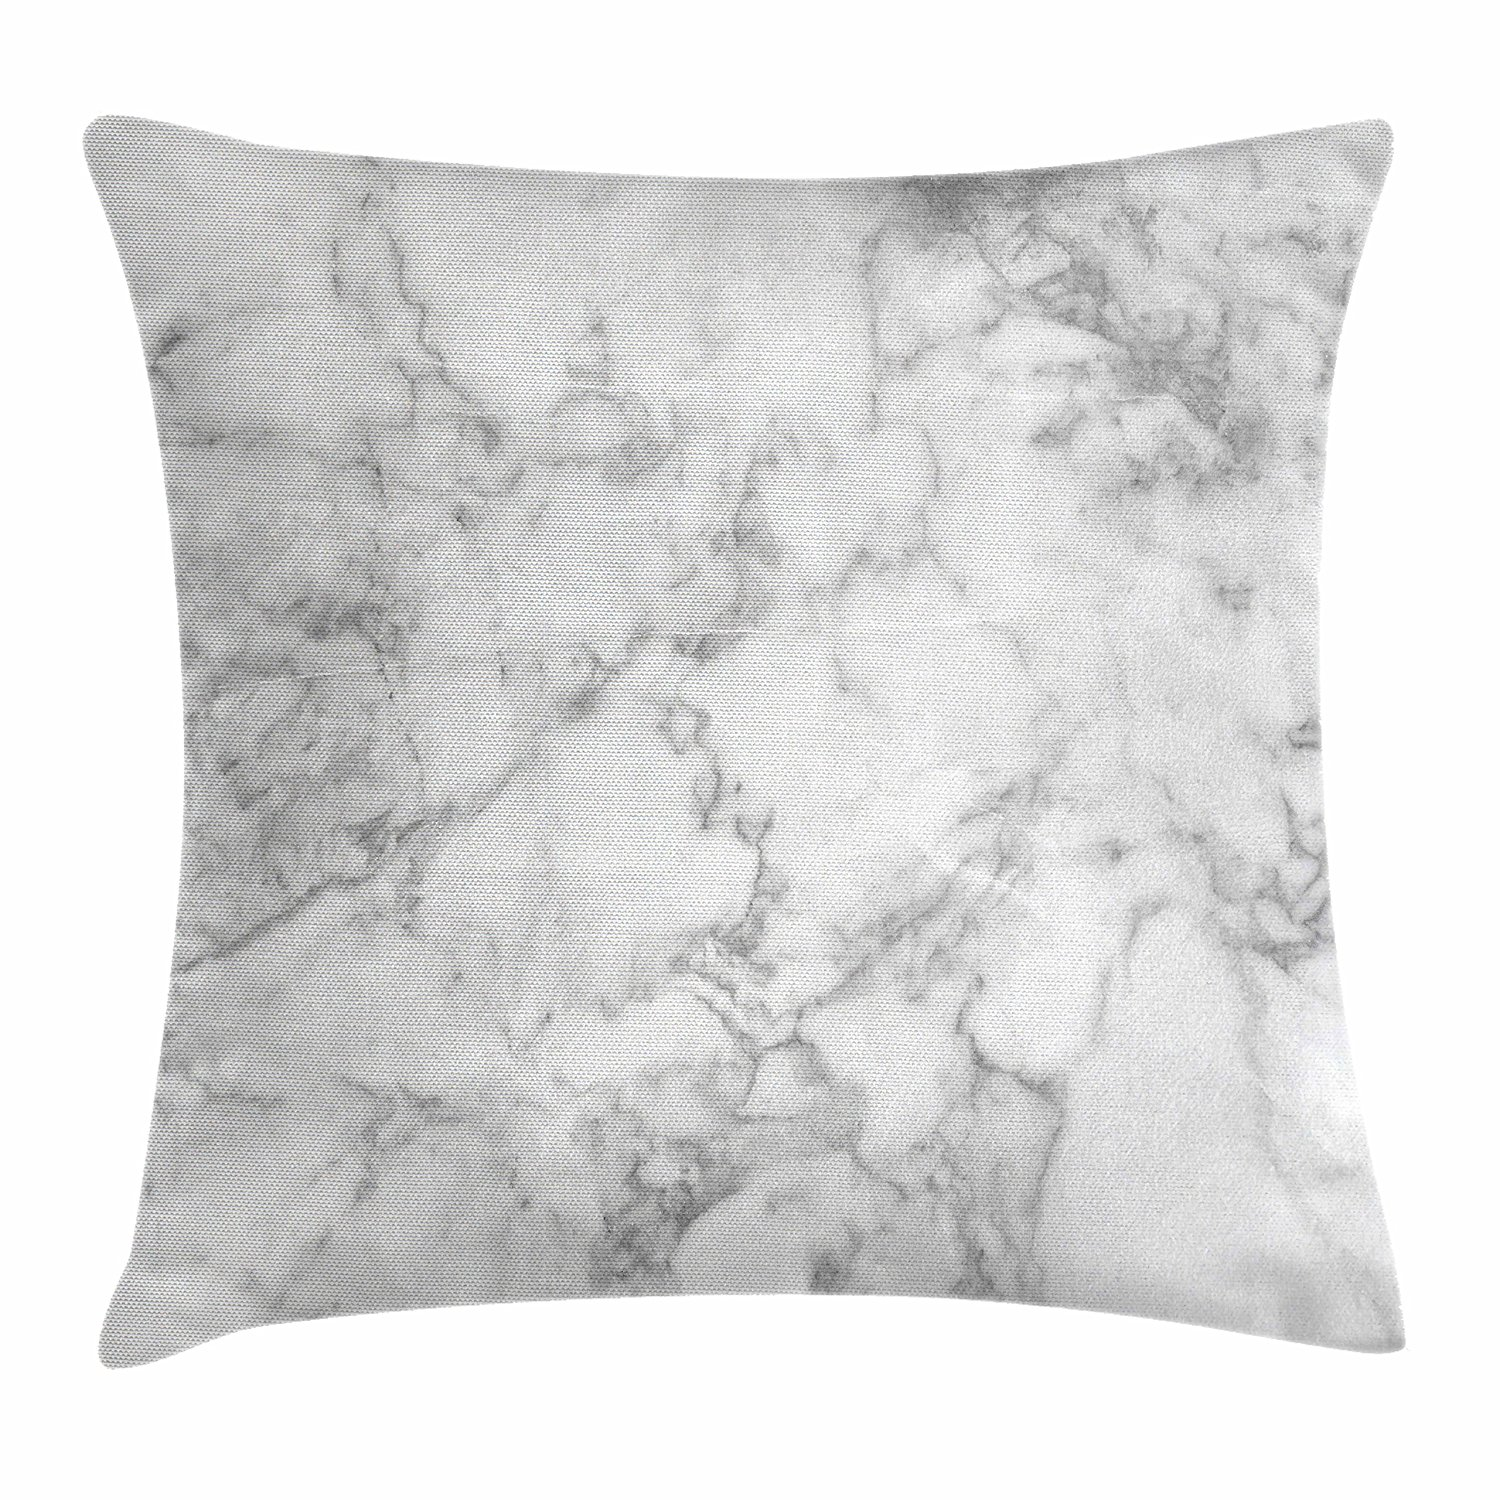 Ambesonne Marble Throw Pillow Cushion Cover, Nature Granite Pattern with Cloudy Spotted Trace Effects Marble Artistic Image, Decorative Square Accent Pillow Case, 18 X 18 Inches, Light Grey Dust